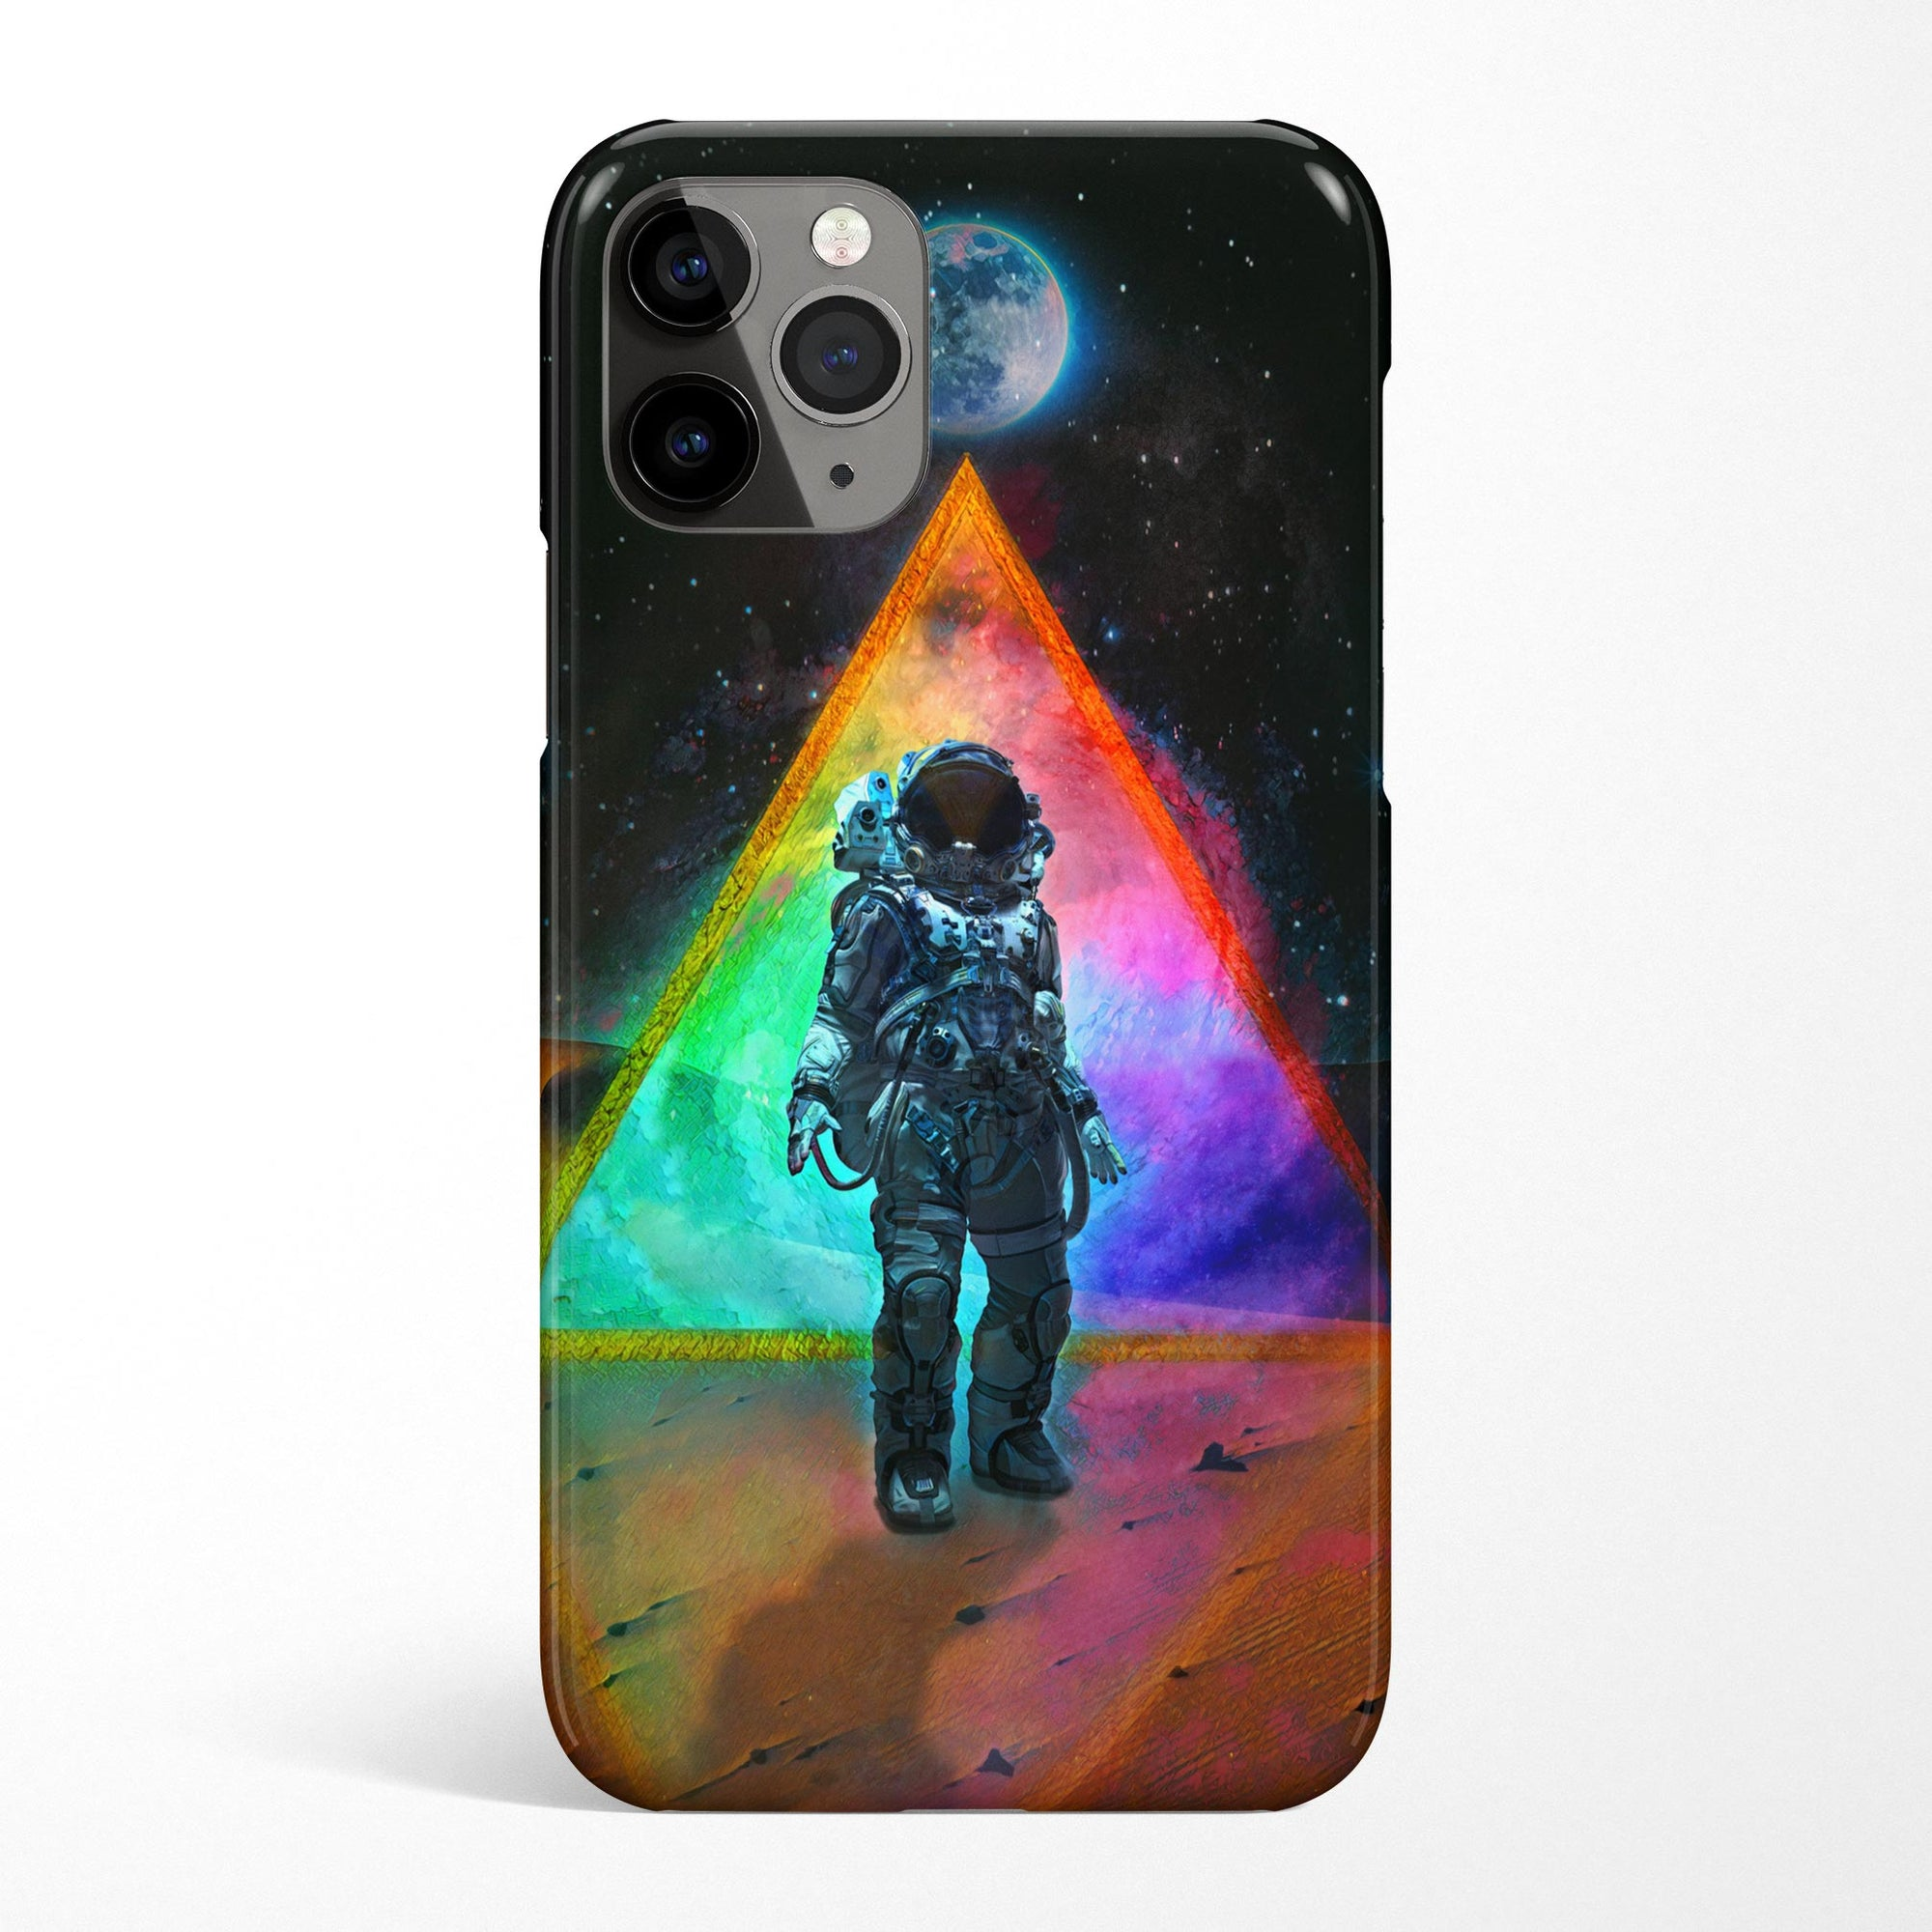 Man on Mars Phone Case - Thedopeart Phone Cases 2